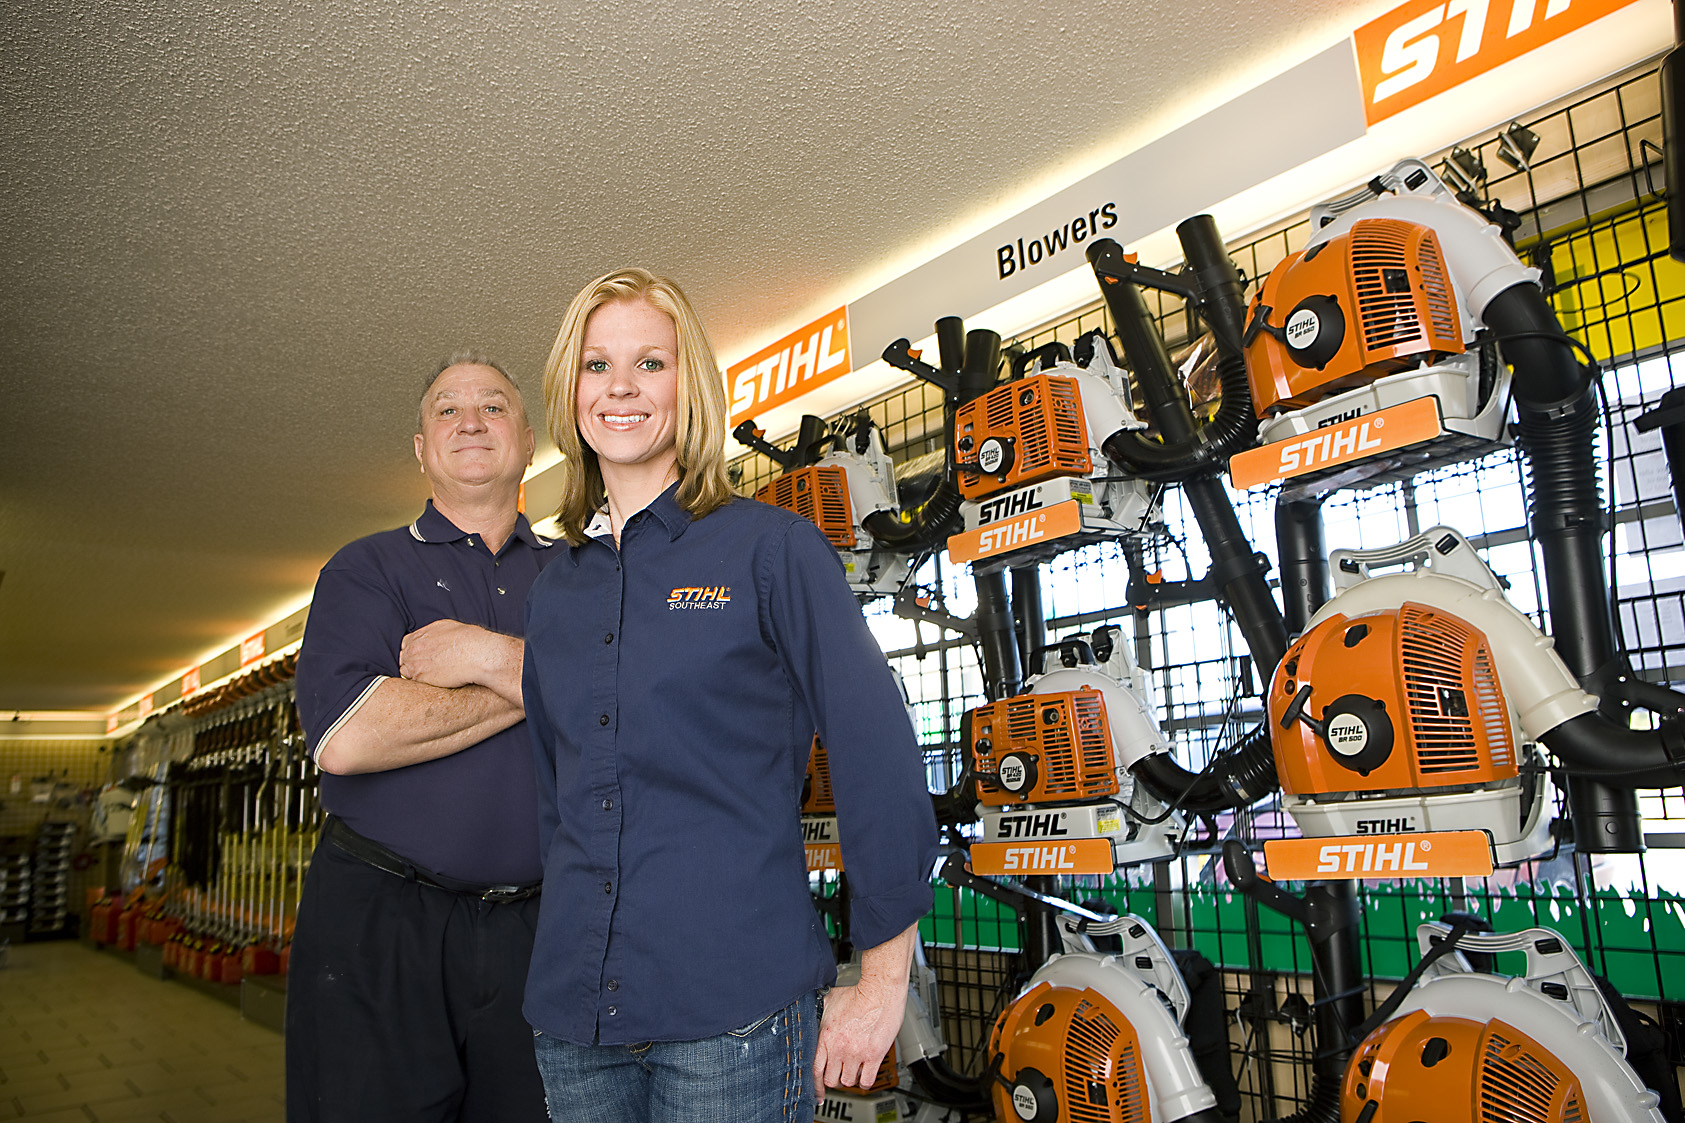 Al' Lawn Care is a family owned business.  They have great a line products, Lawn Mowers, Edgers, String Line Trimmers, Blowers and lots more.  Exmark - Stihl